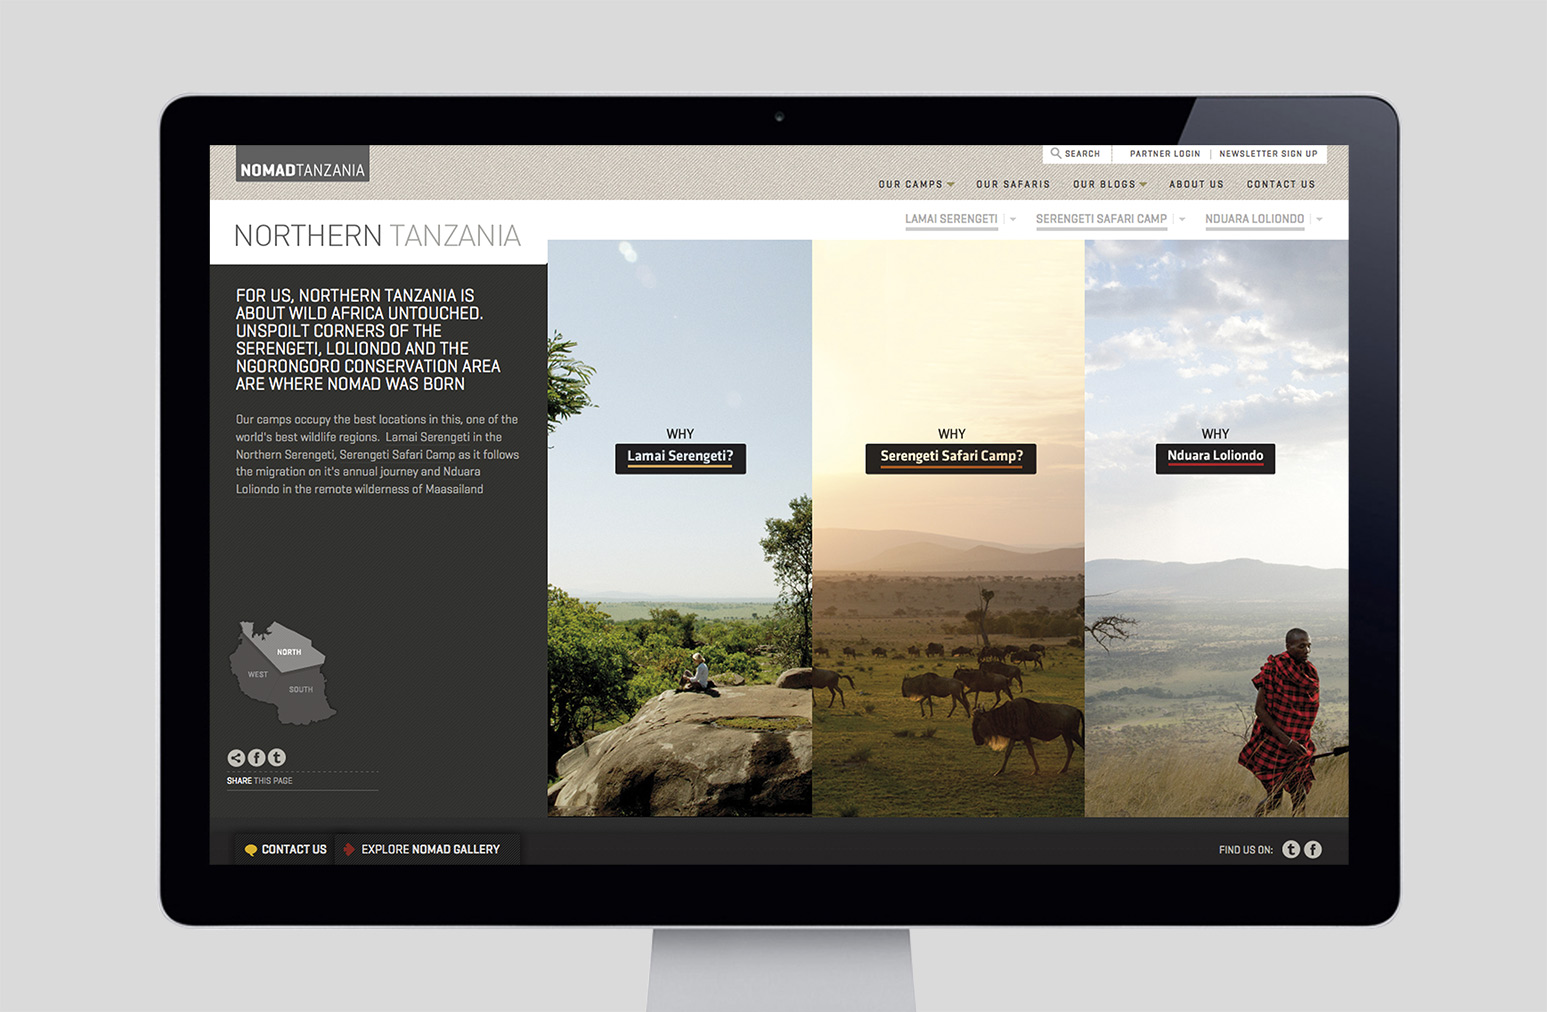 Nomad Tanzania Website Design One Darnley Road 1